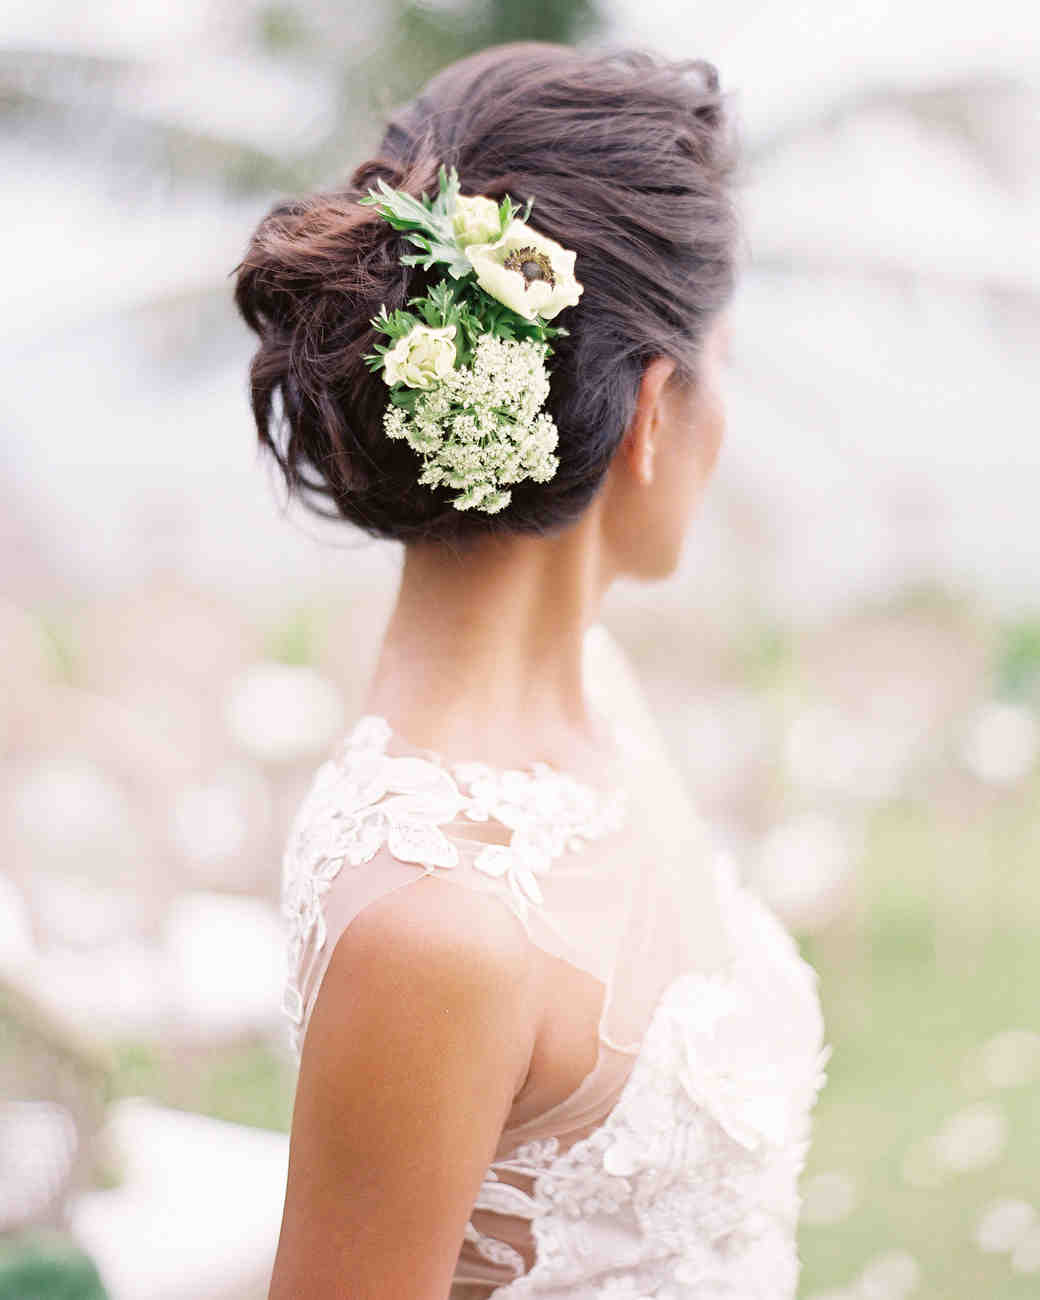 Wedding Hair Style Video: 20 Wedding Hairstyles With Flowers